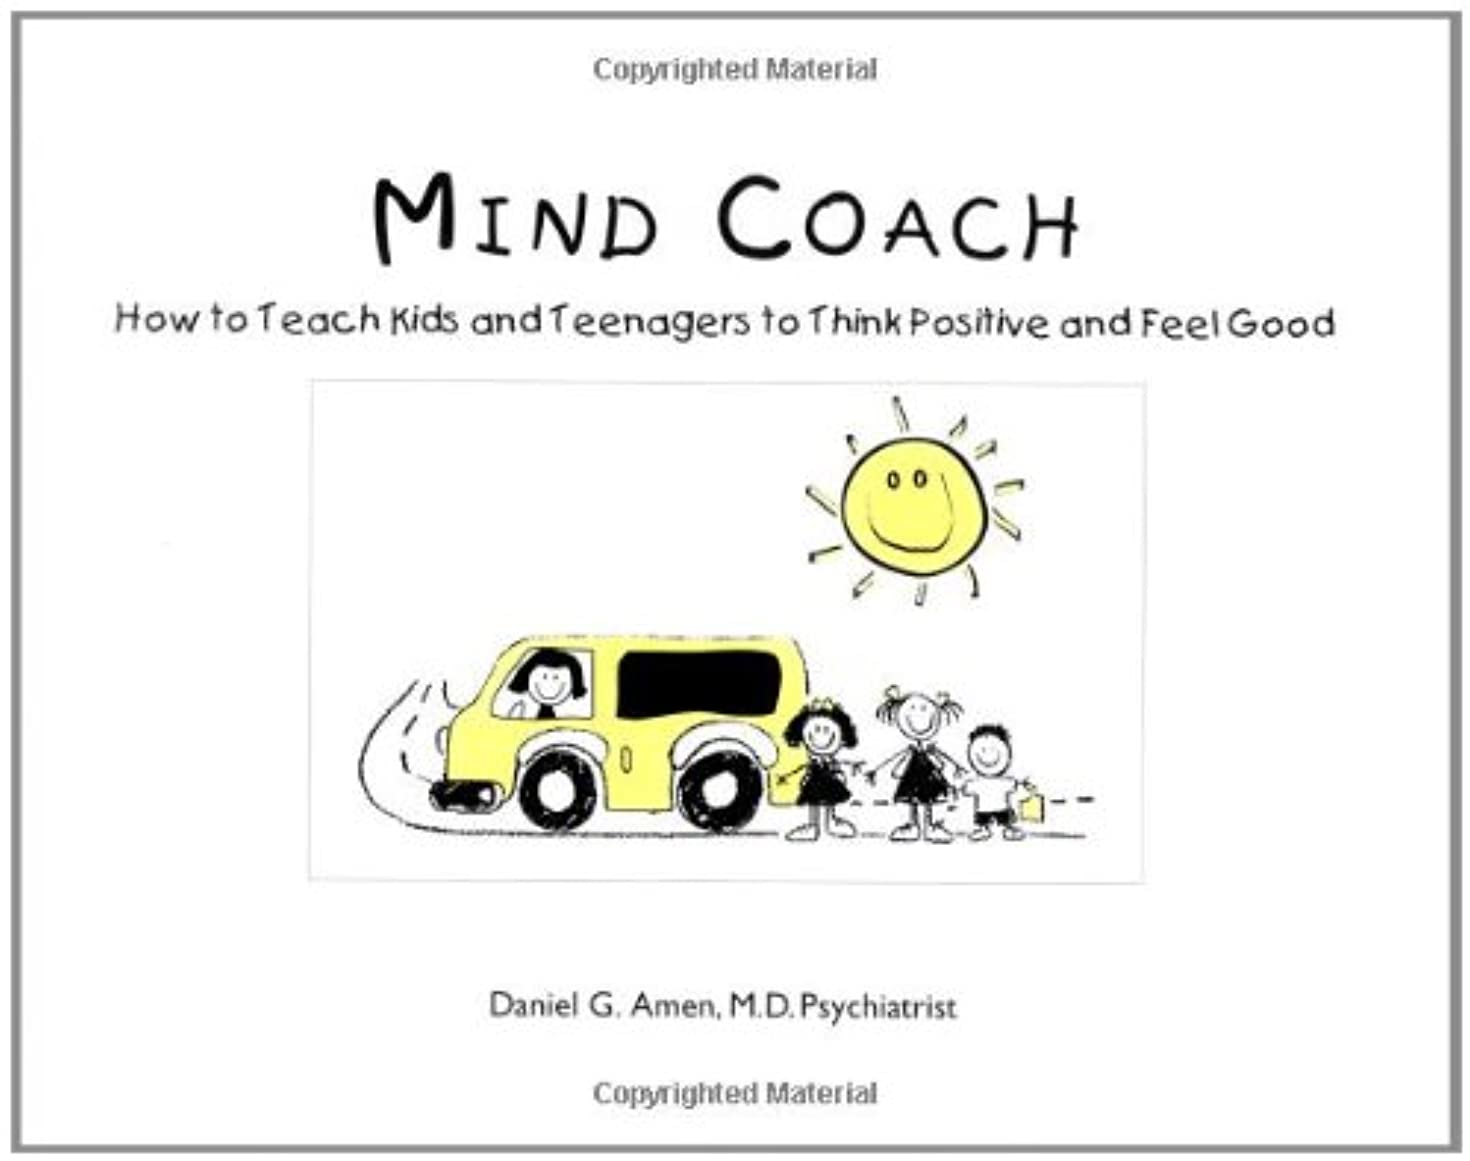 Mind Coach: How to Teach Children & Teenagers to Think Positive & Feel Good